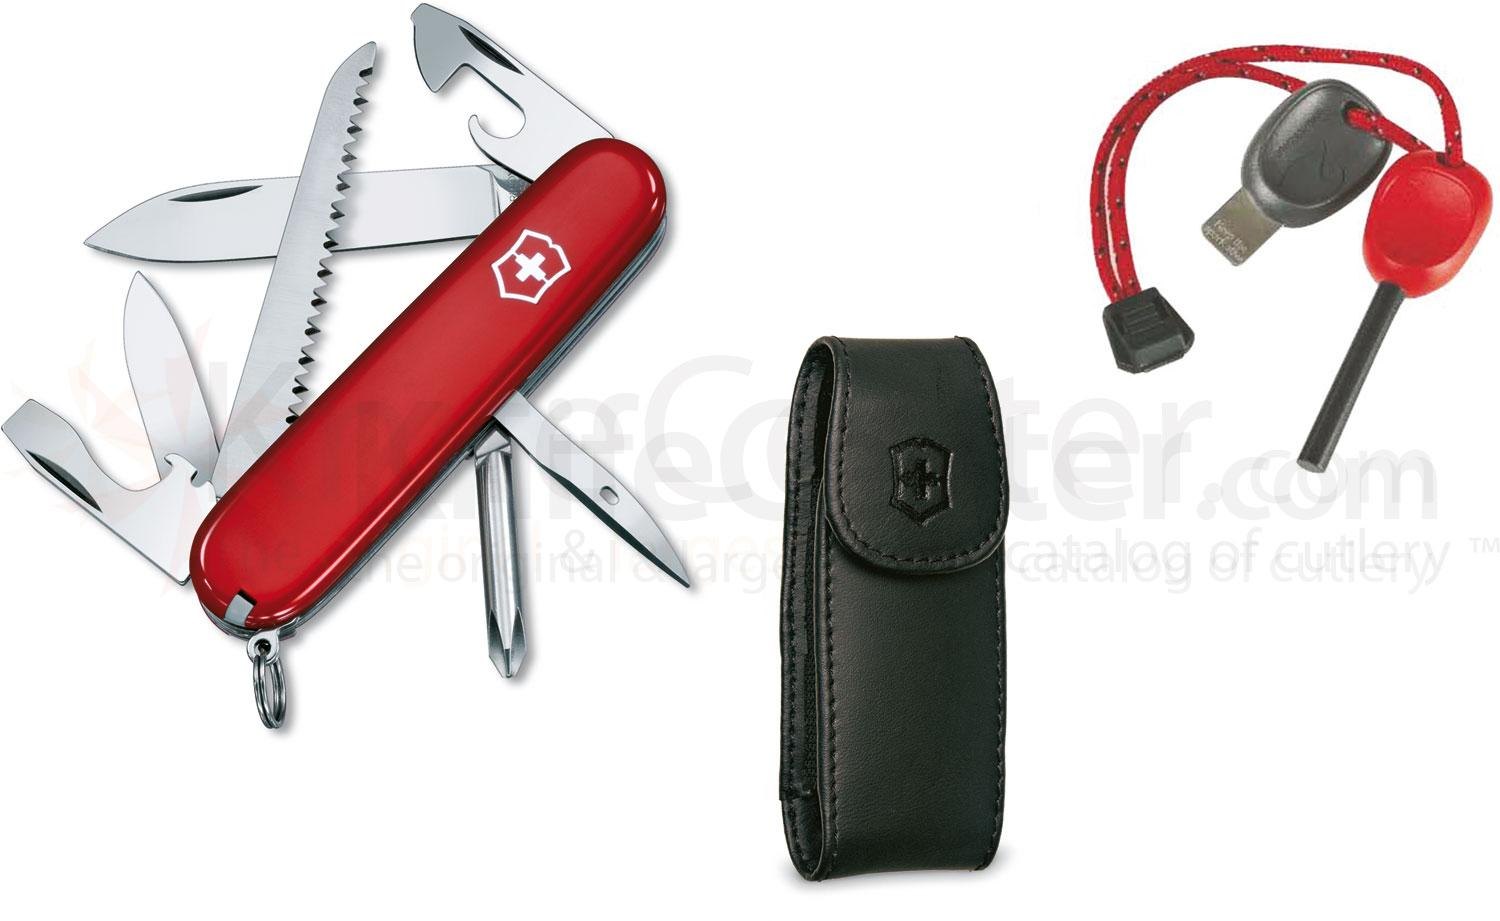 Victorinox Swiss Army 57608 Hiker Multi-Tool / Firestarter Combo, 3-1/2 inch Red Handles, Leather Sheath